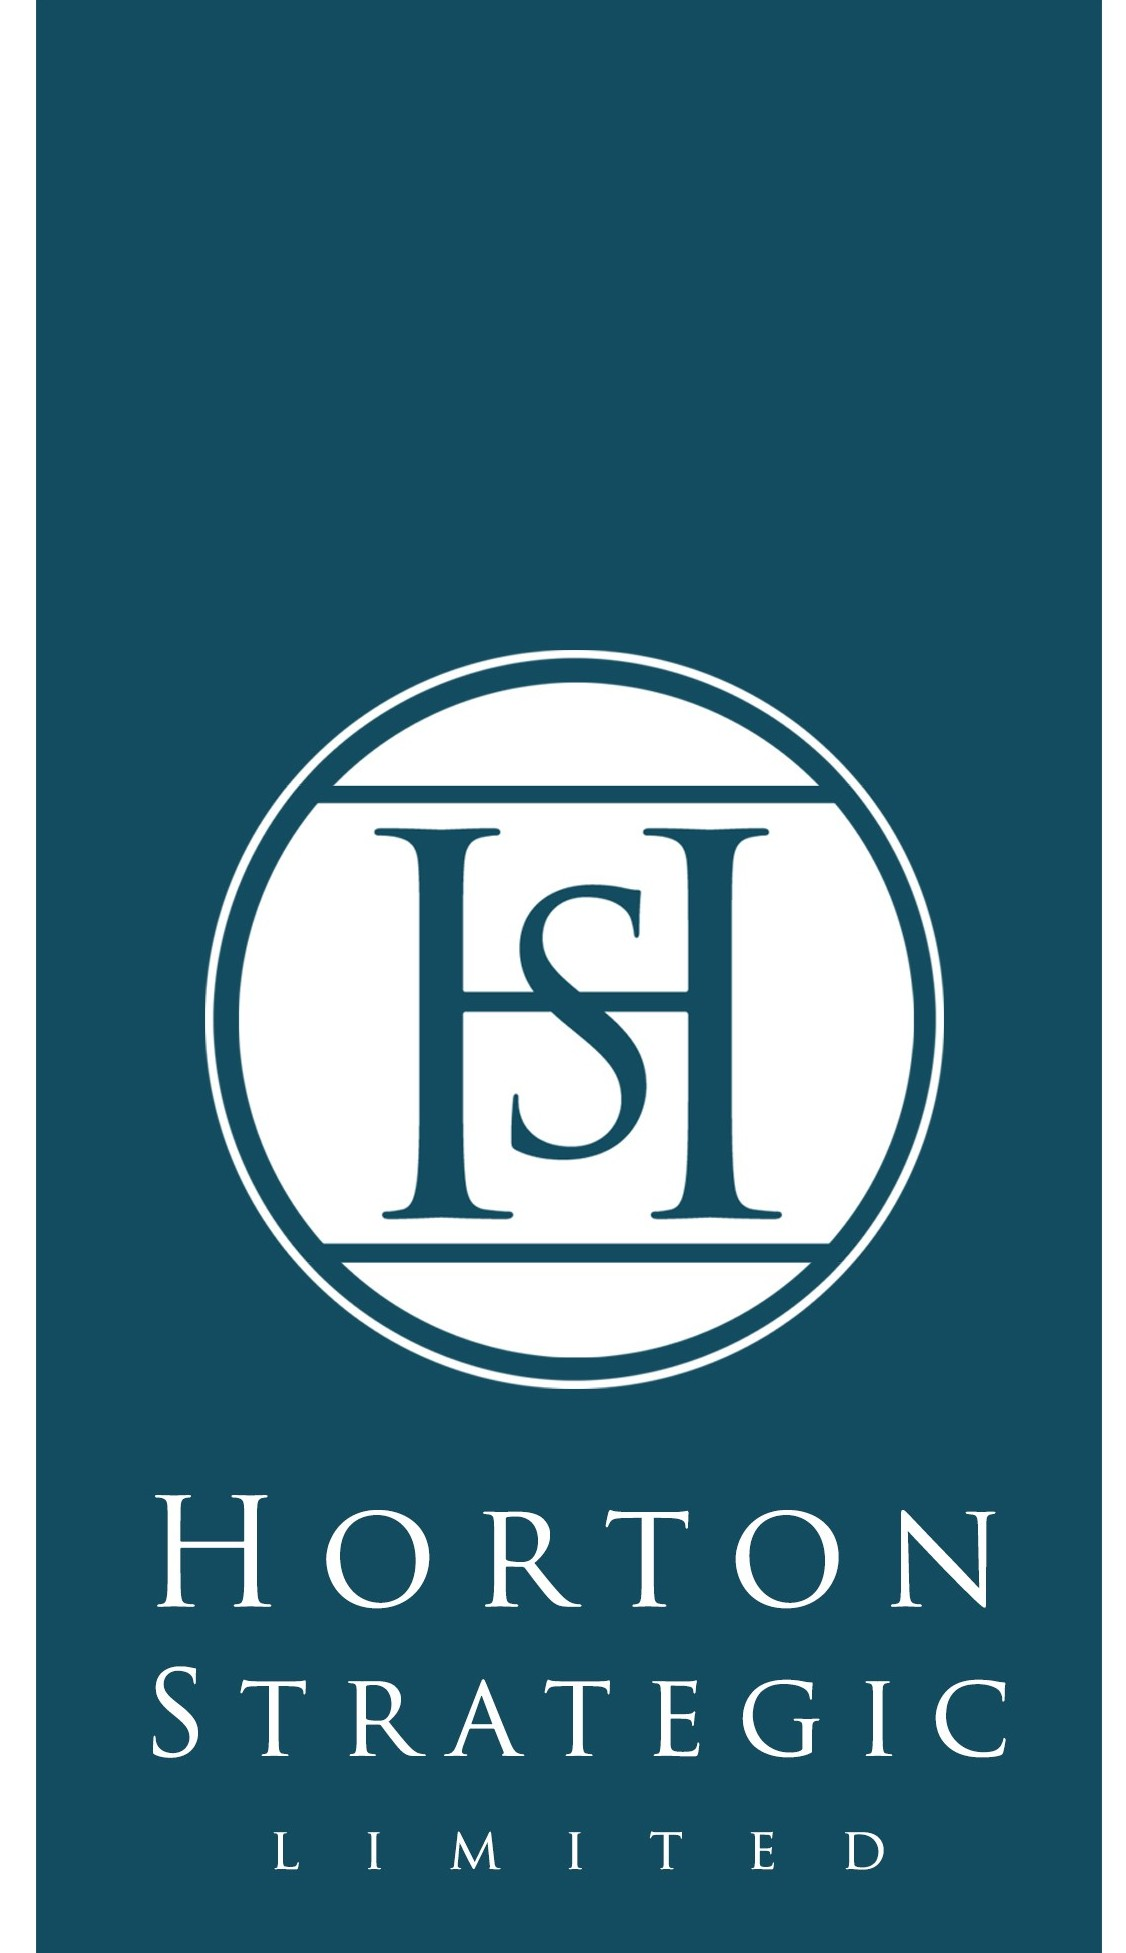 Horton Strategic limited_1